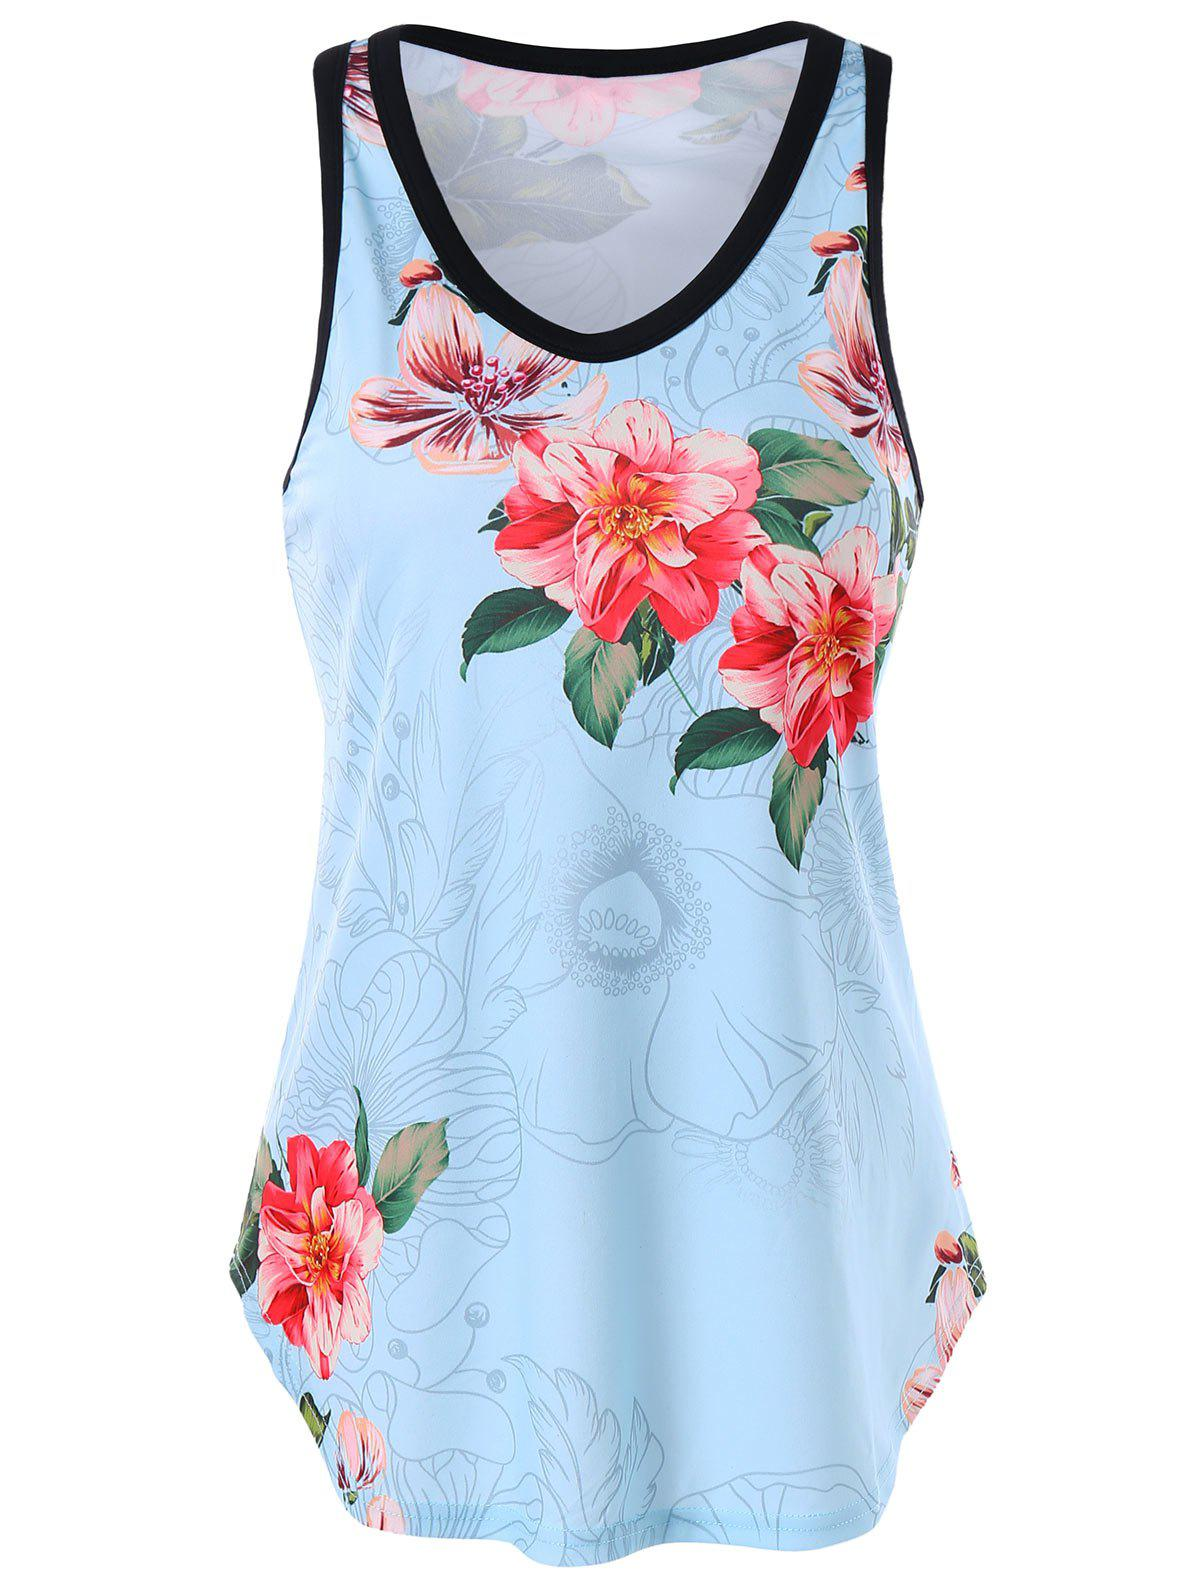 Chic Floral Trapeze Tank Top